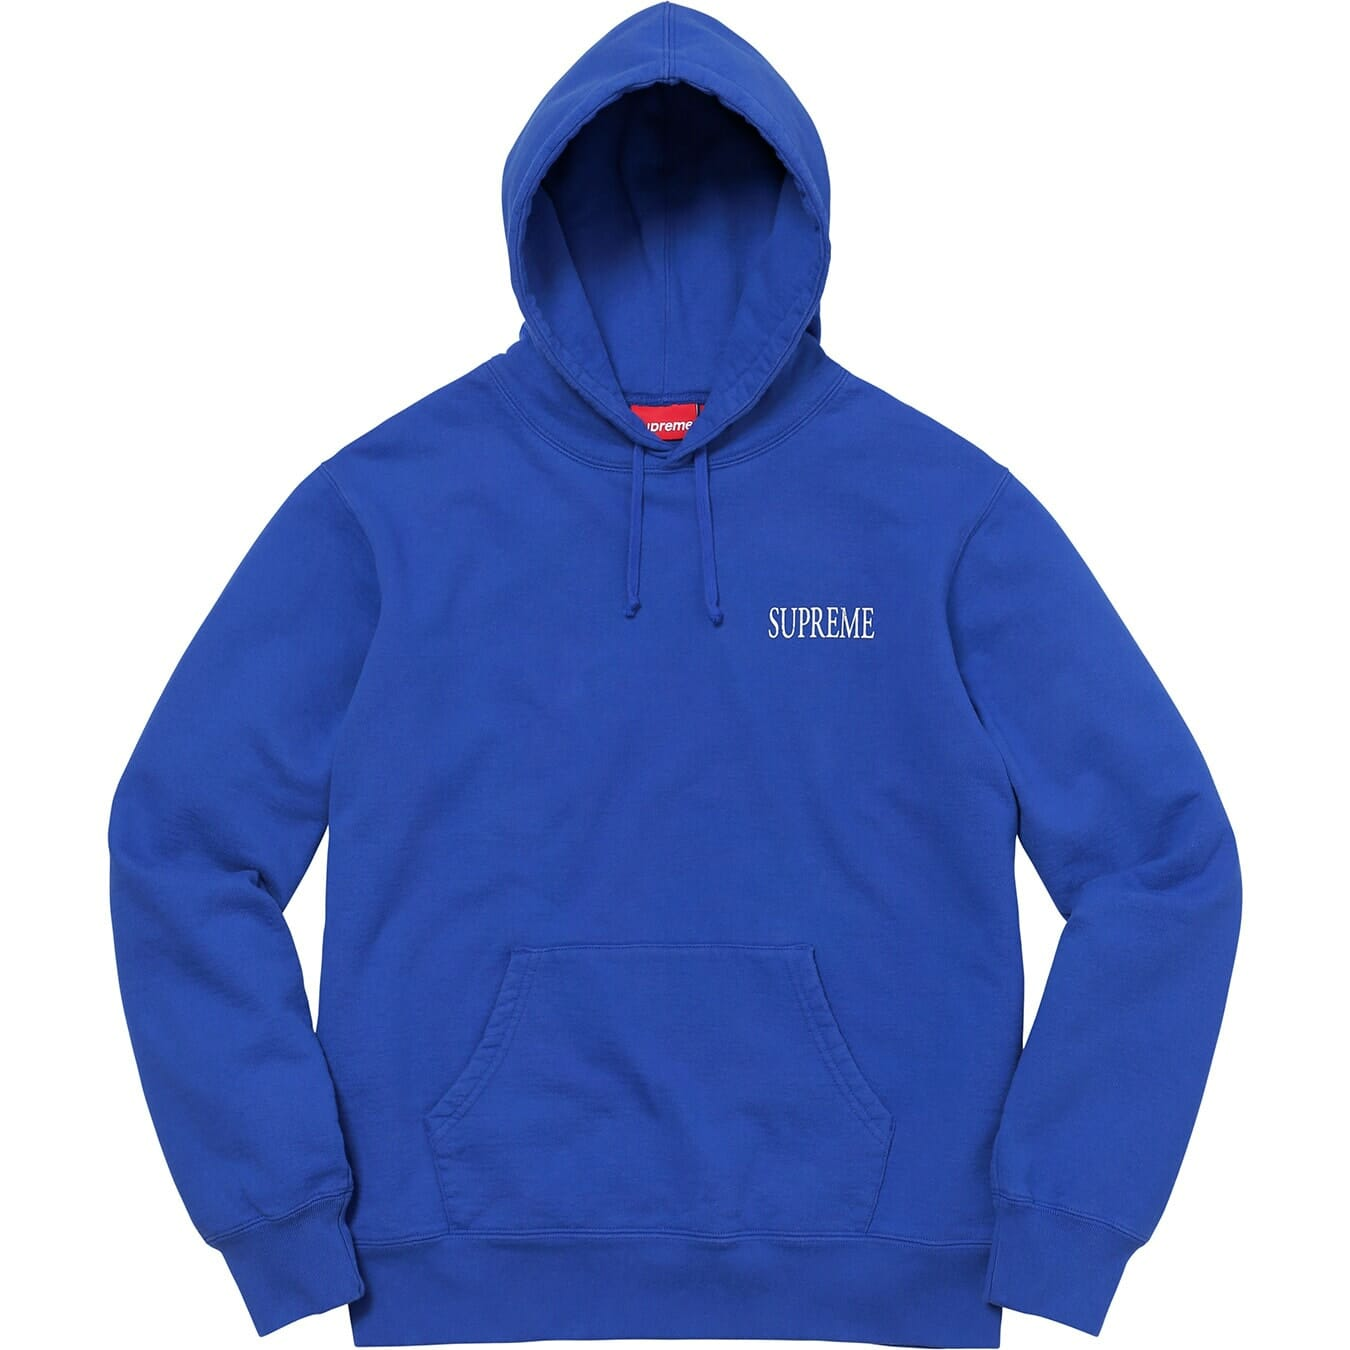 supreme-2017aw-fall-winter-decline-hooded-sweatshirt